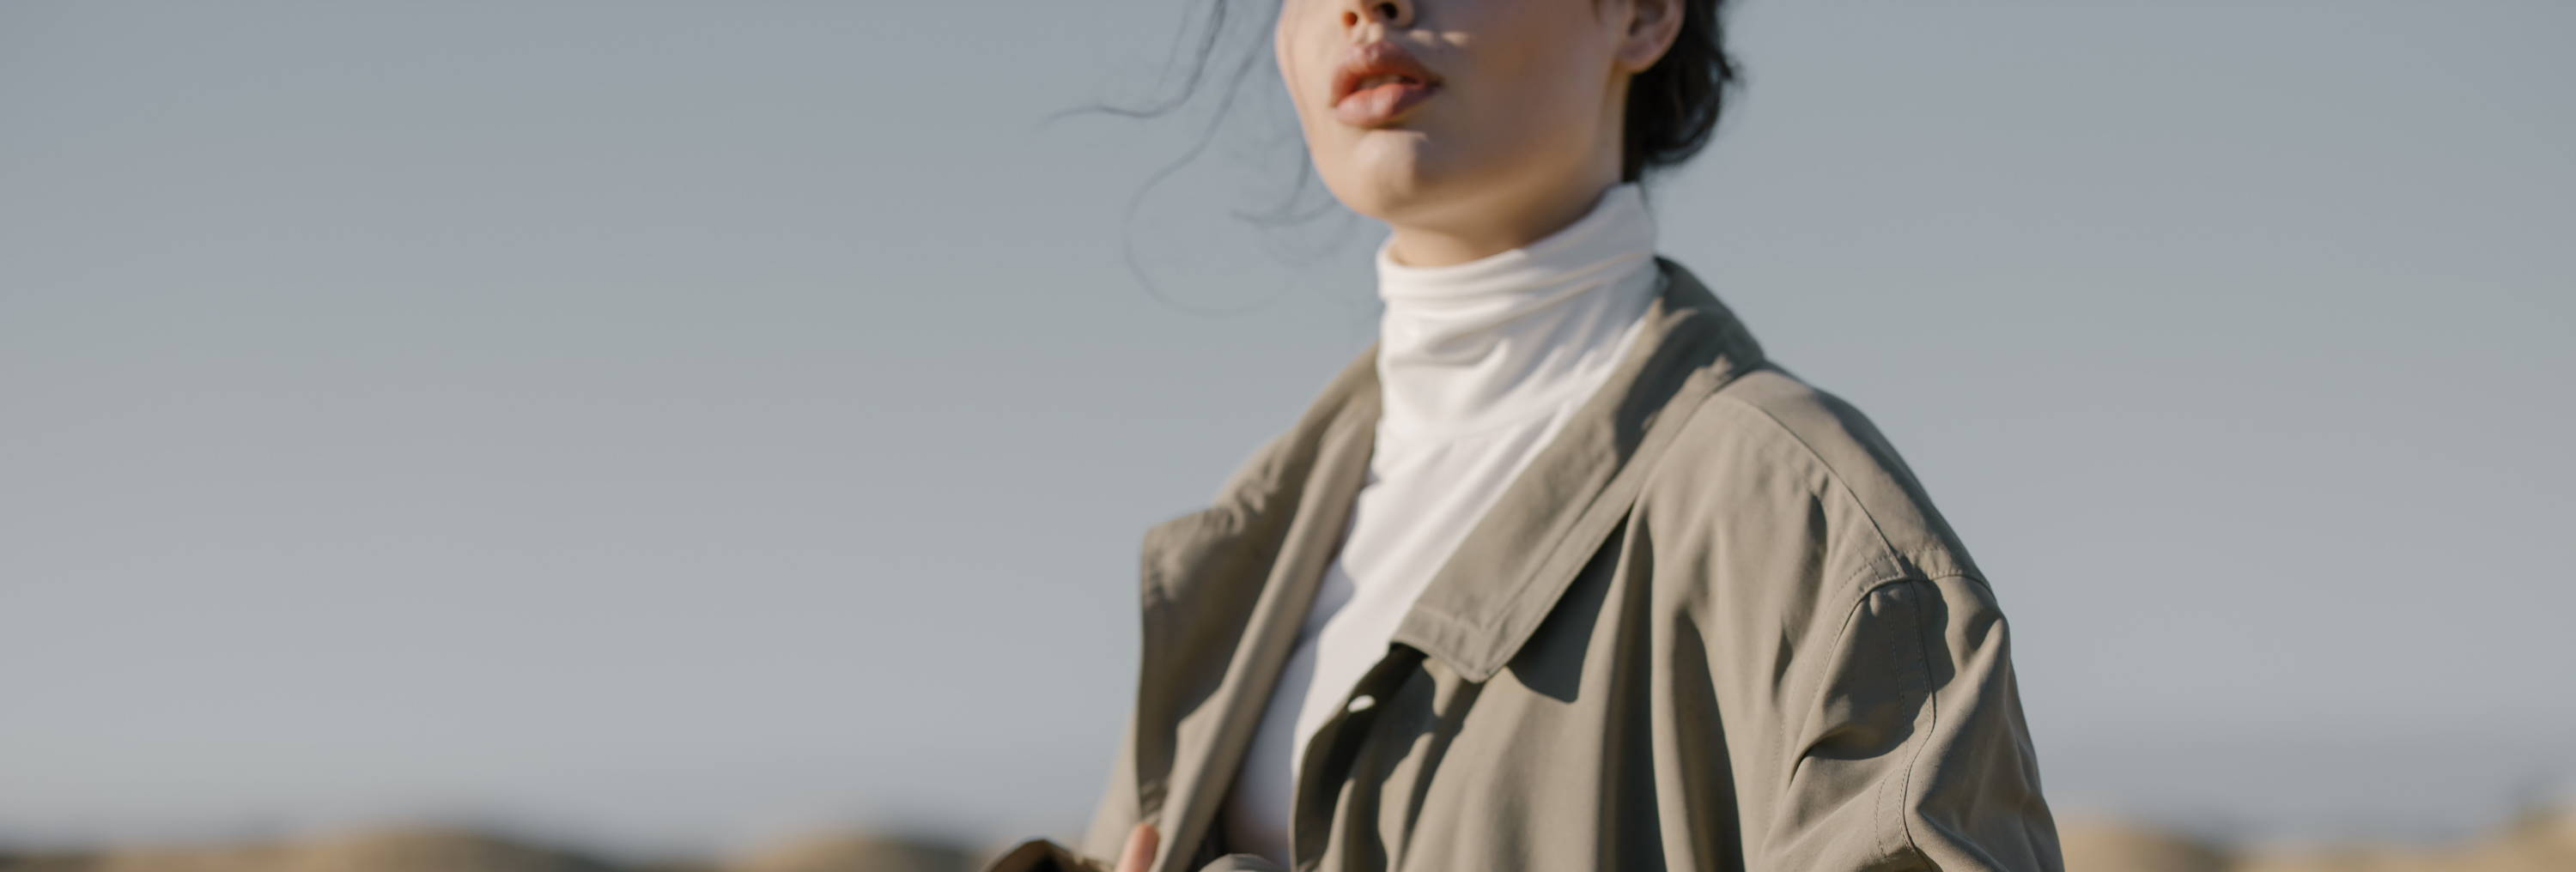 woman wearing white turtleneck and beige trench coat